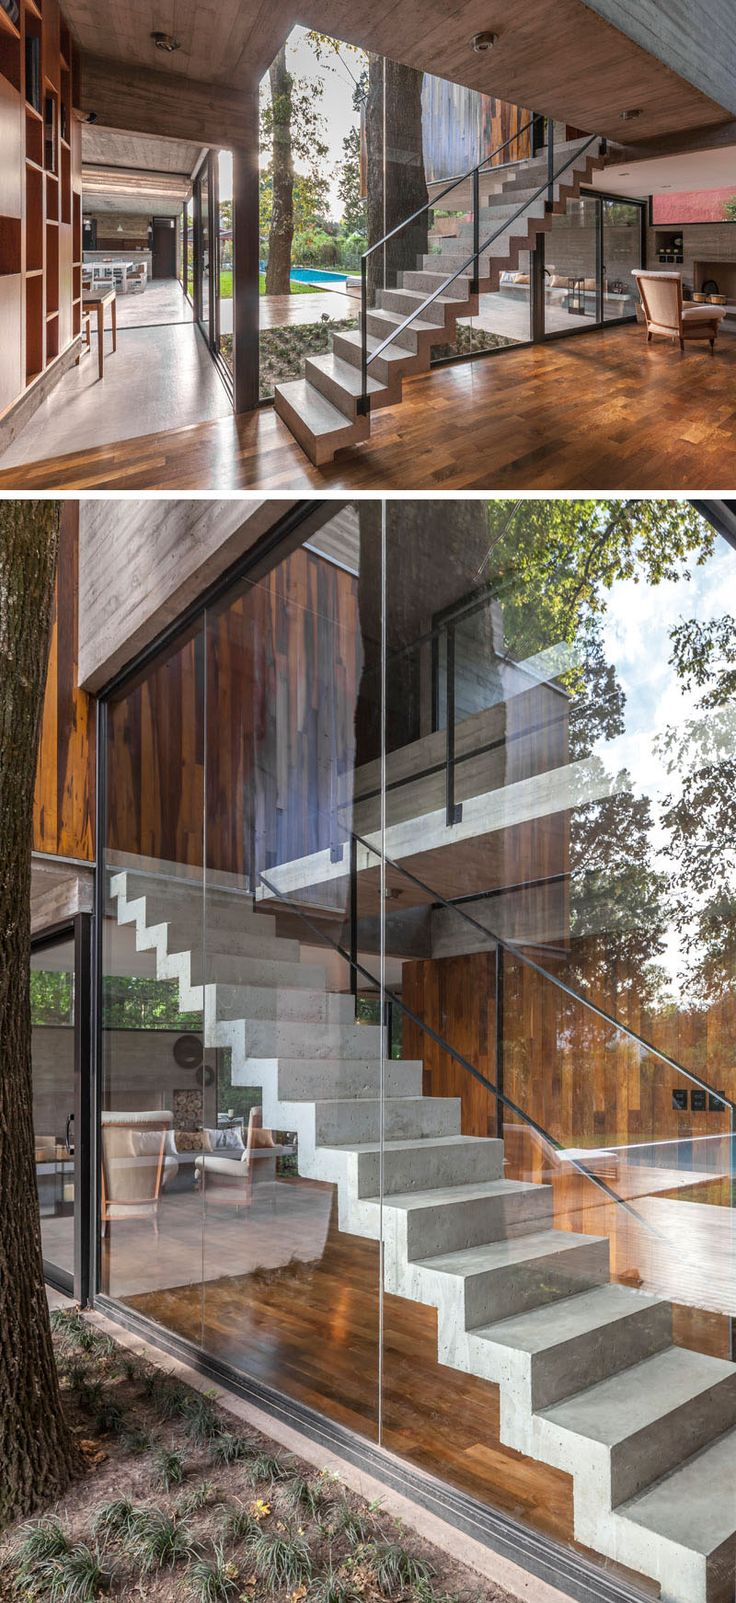 Concrete stairs lead to the upper level of this modern house, while the large windows show off the stairs when viewed from the backyard. #ModernStairs #ConcreteStairs #Windows